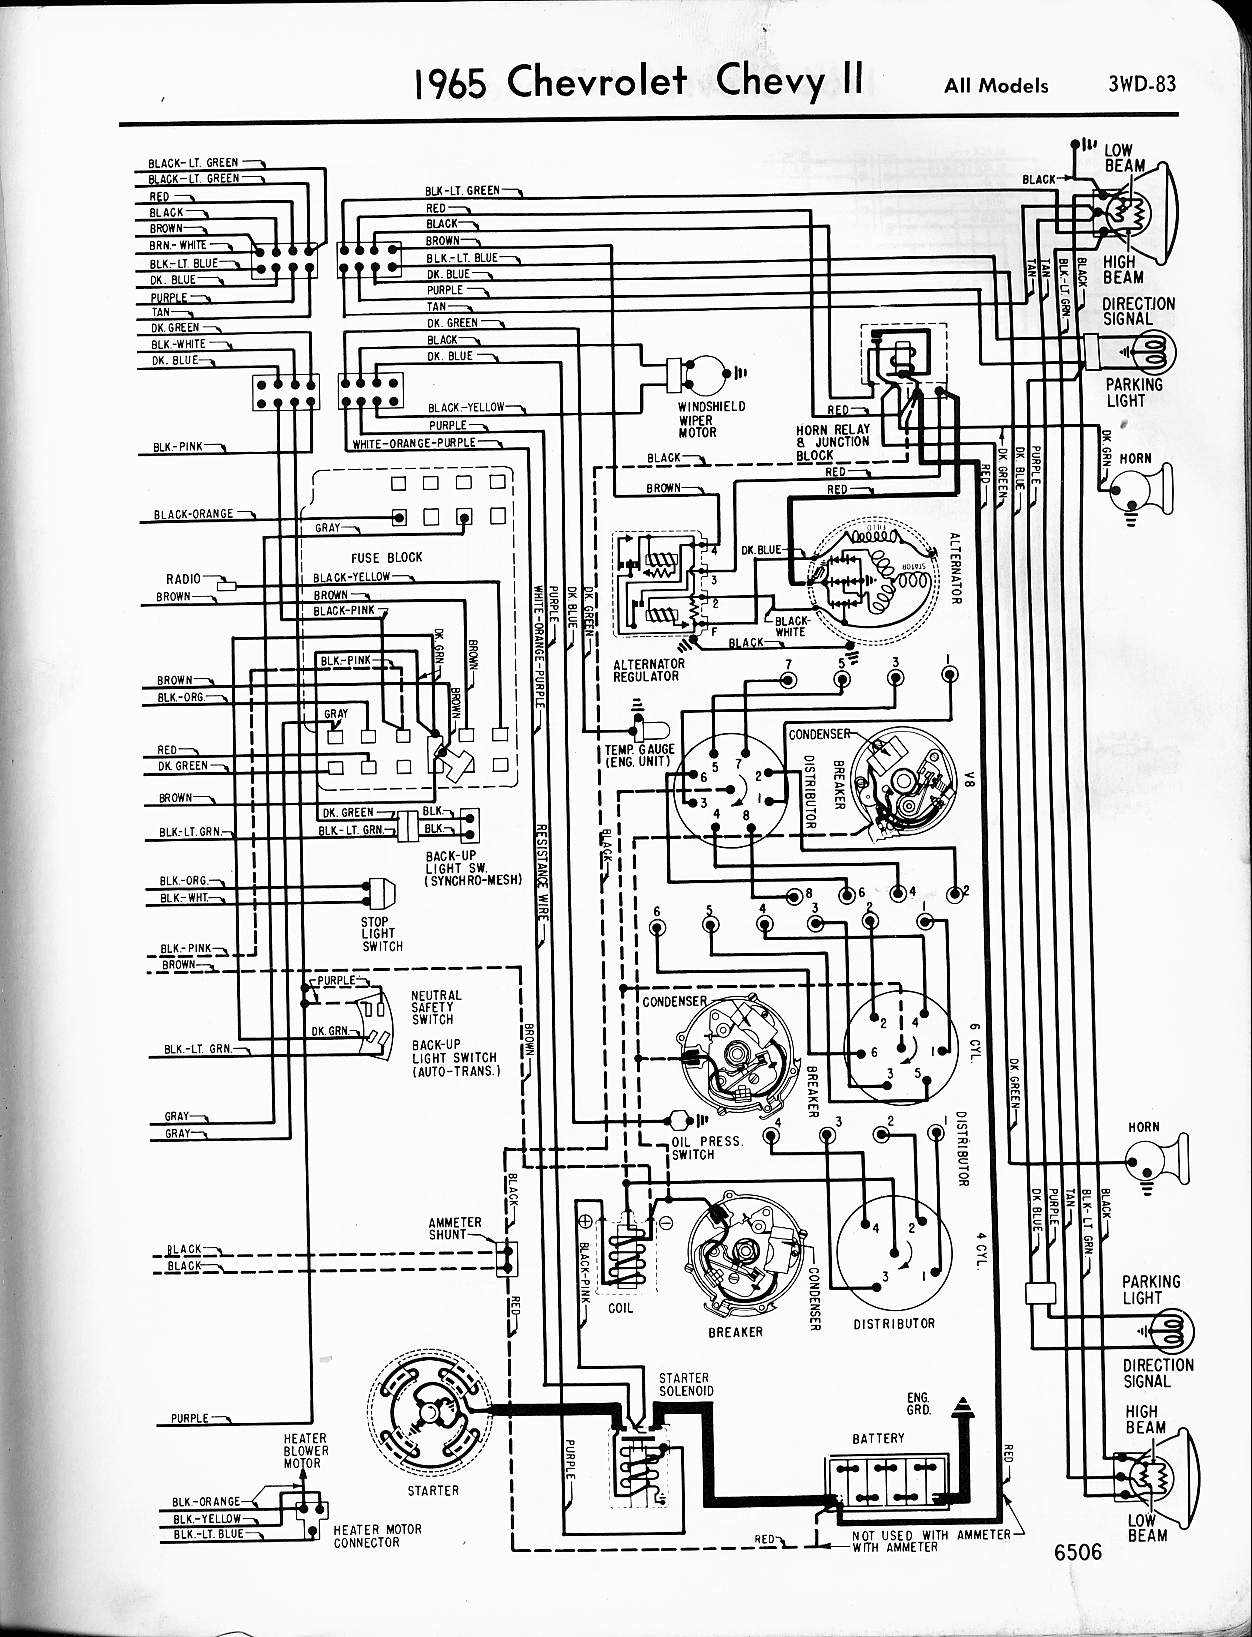 MWireChev65_3WD 083 57 65 chevy wiring diagrams 63 falcon wiring diagram at gsmx.co